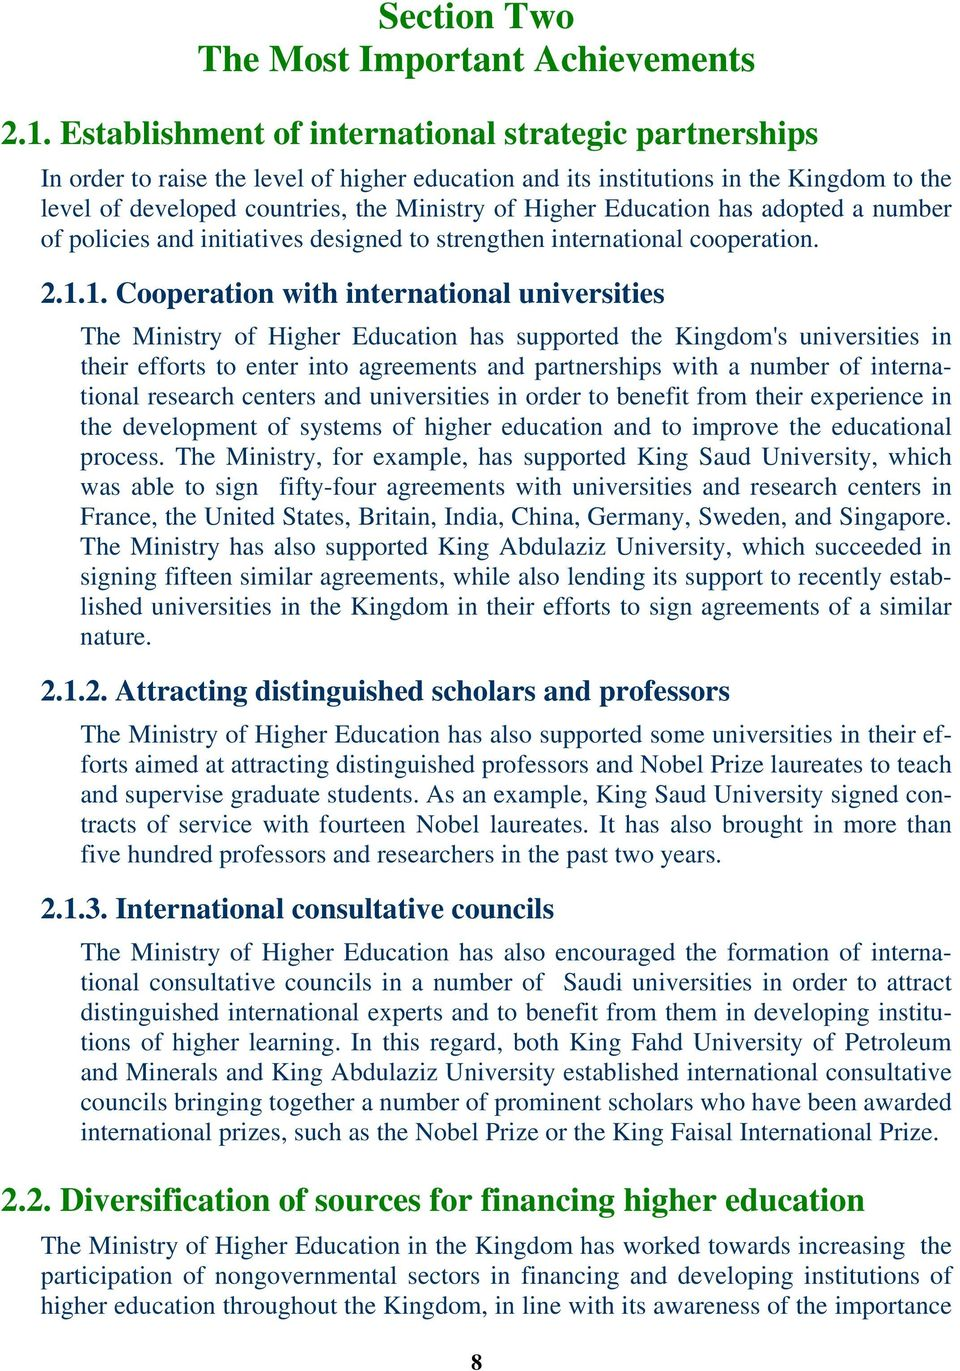 Education has adopted a number of policies and initiatives designed to strengthen international cooperation. 2.1.